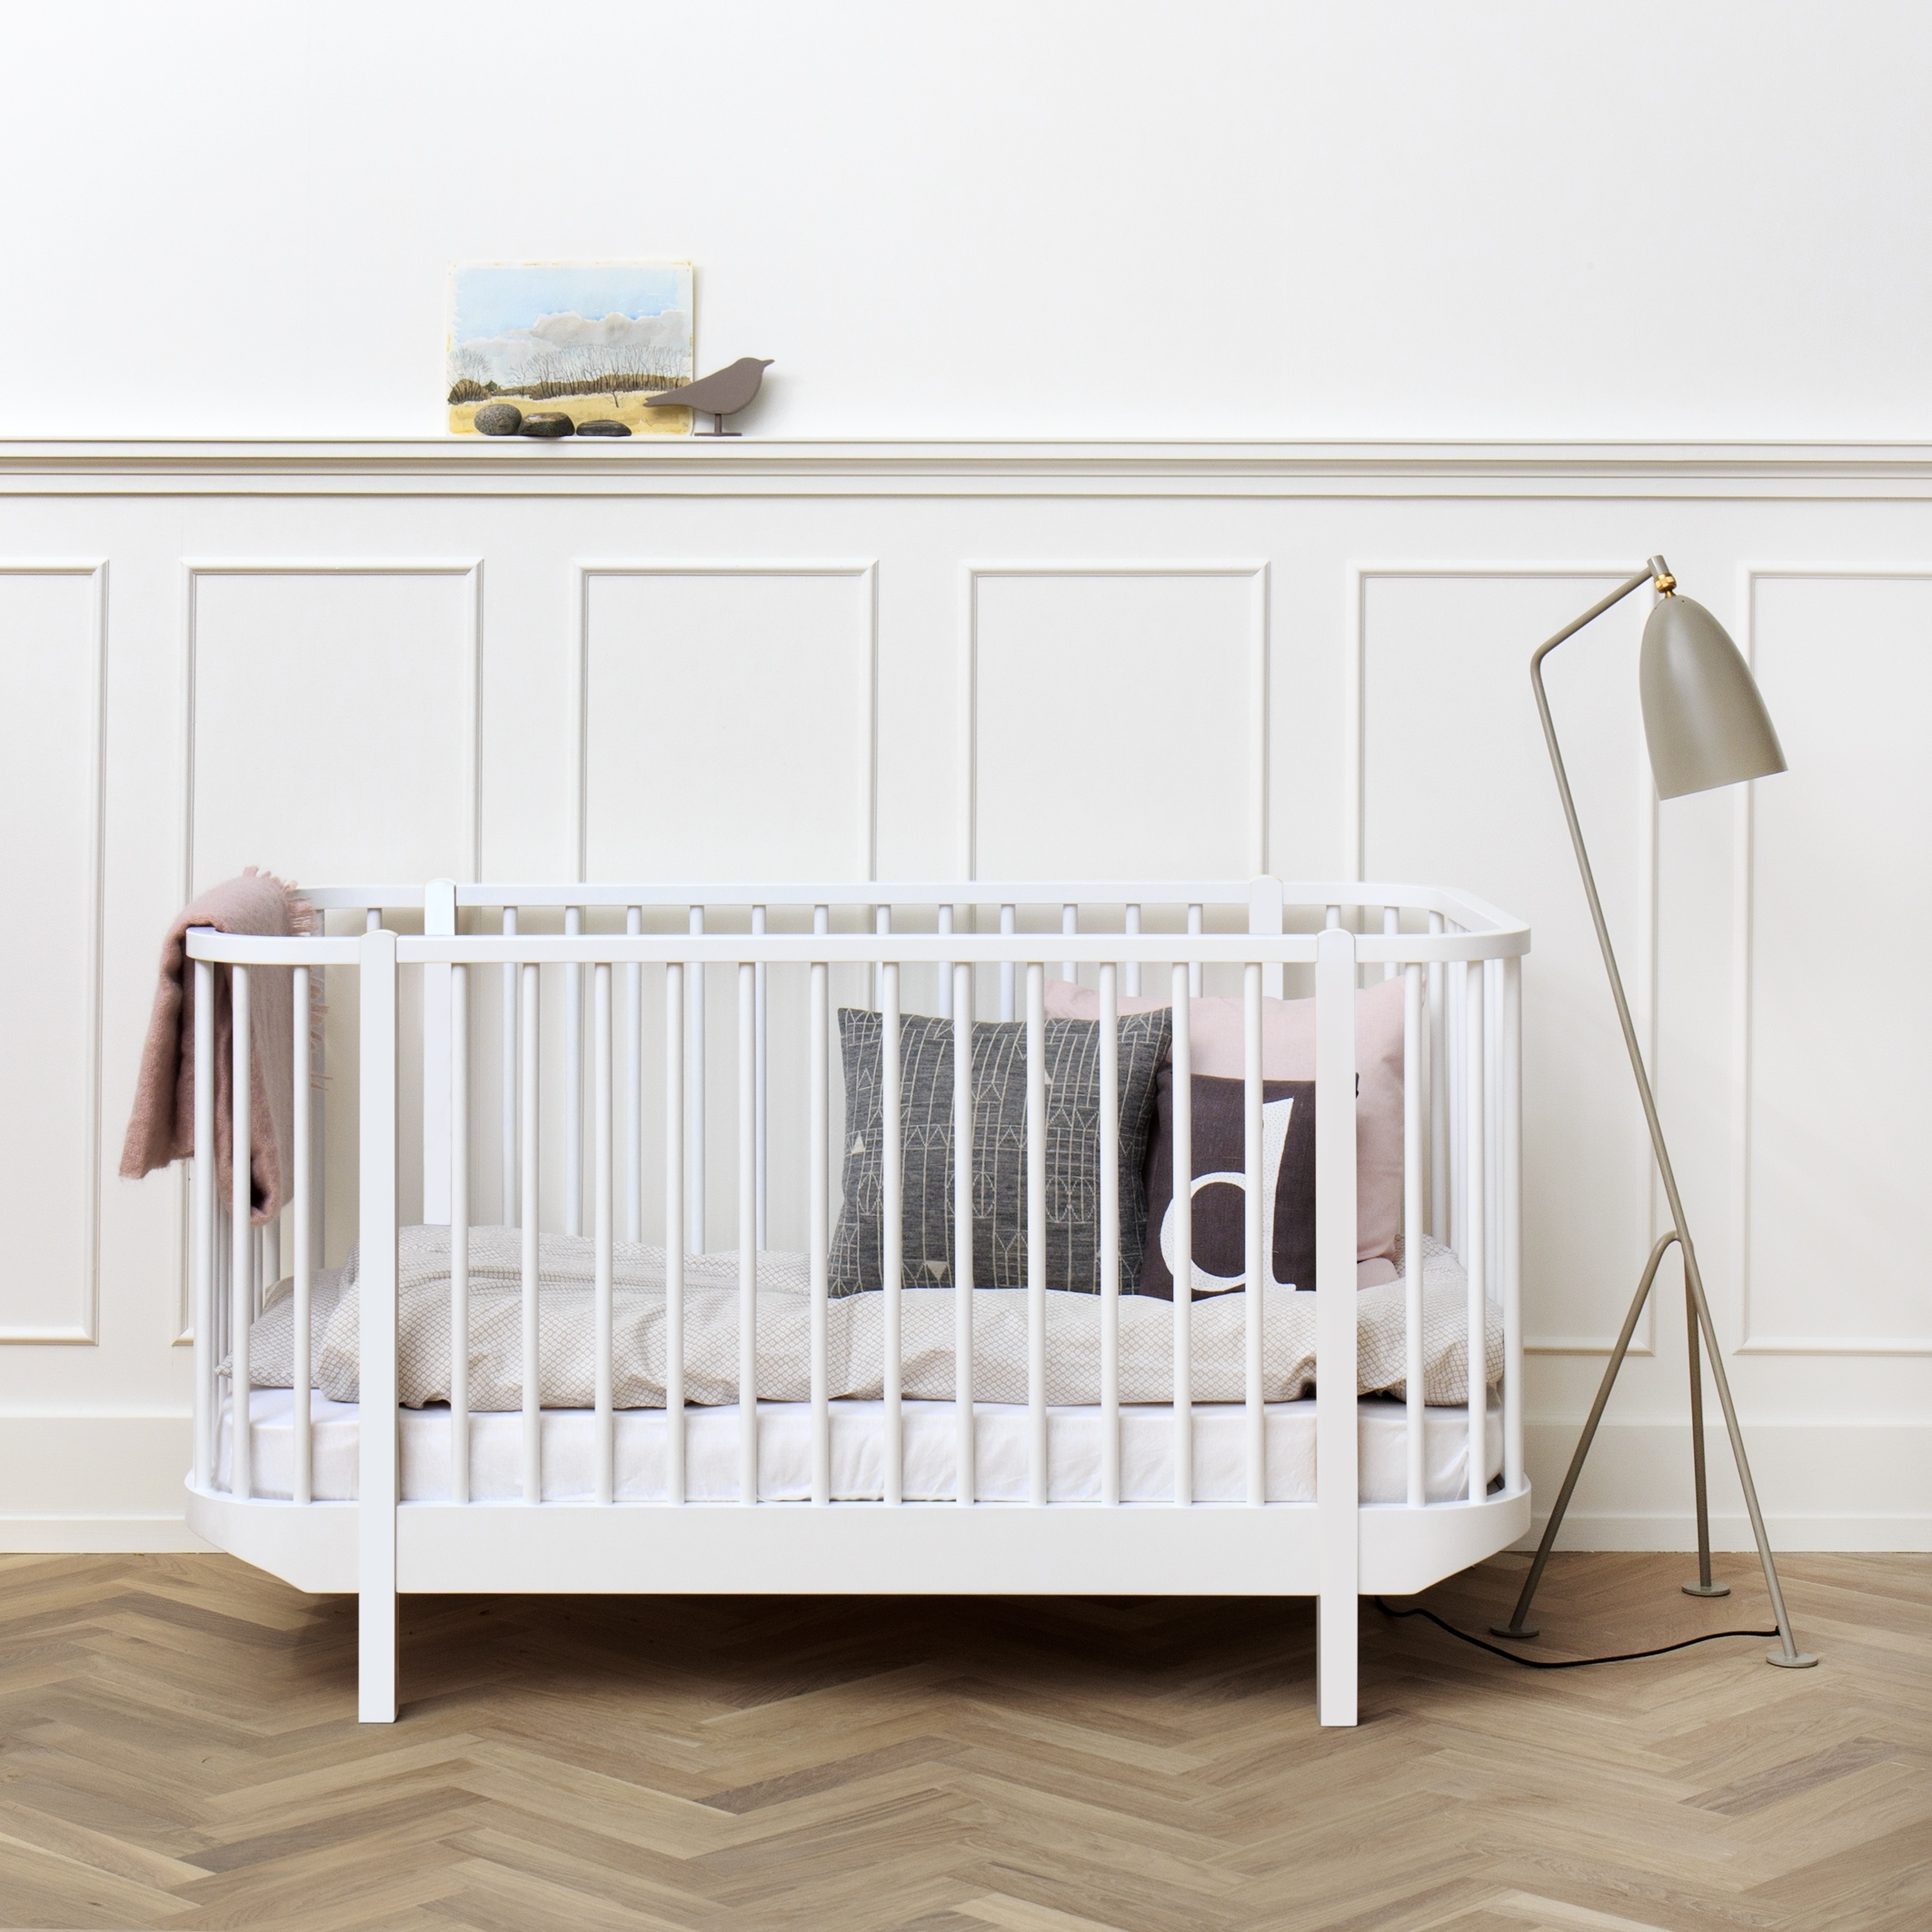 Baby Betten Oliver Furniture Babybett Wood Weiß Kinderbett